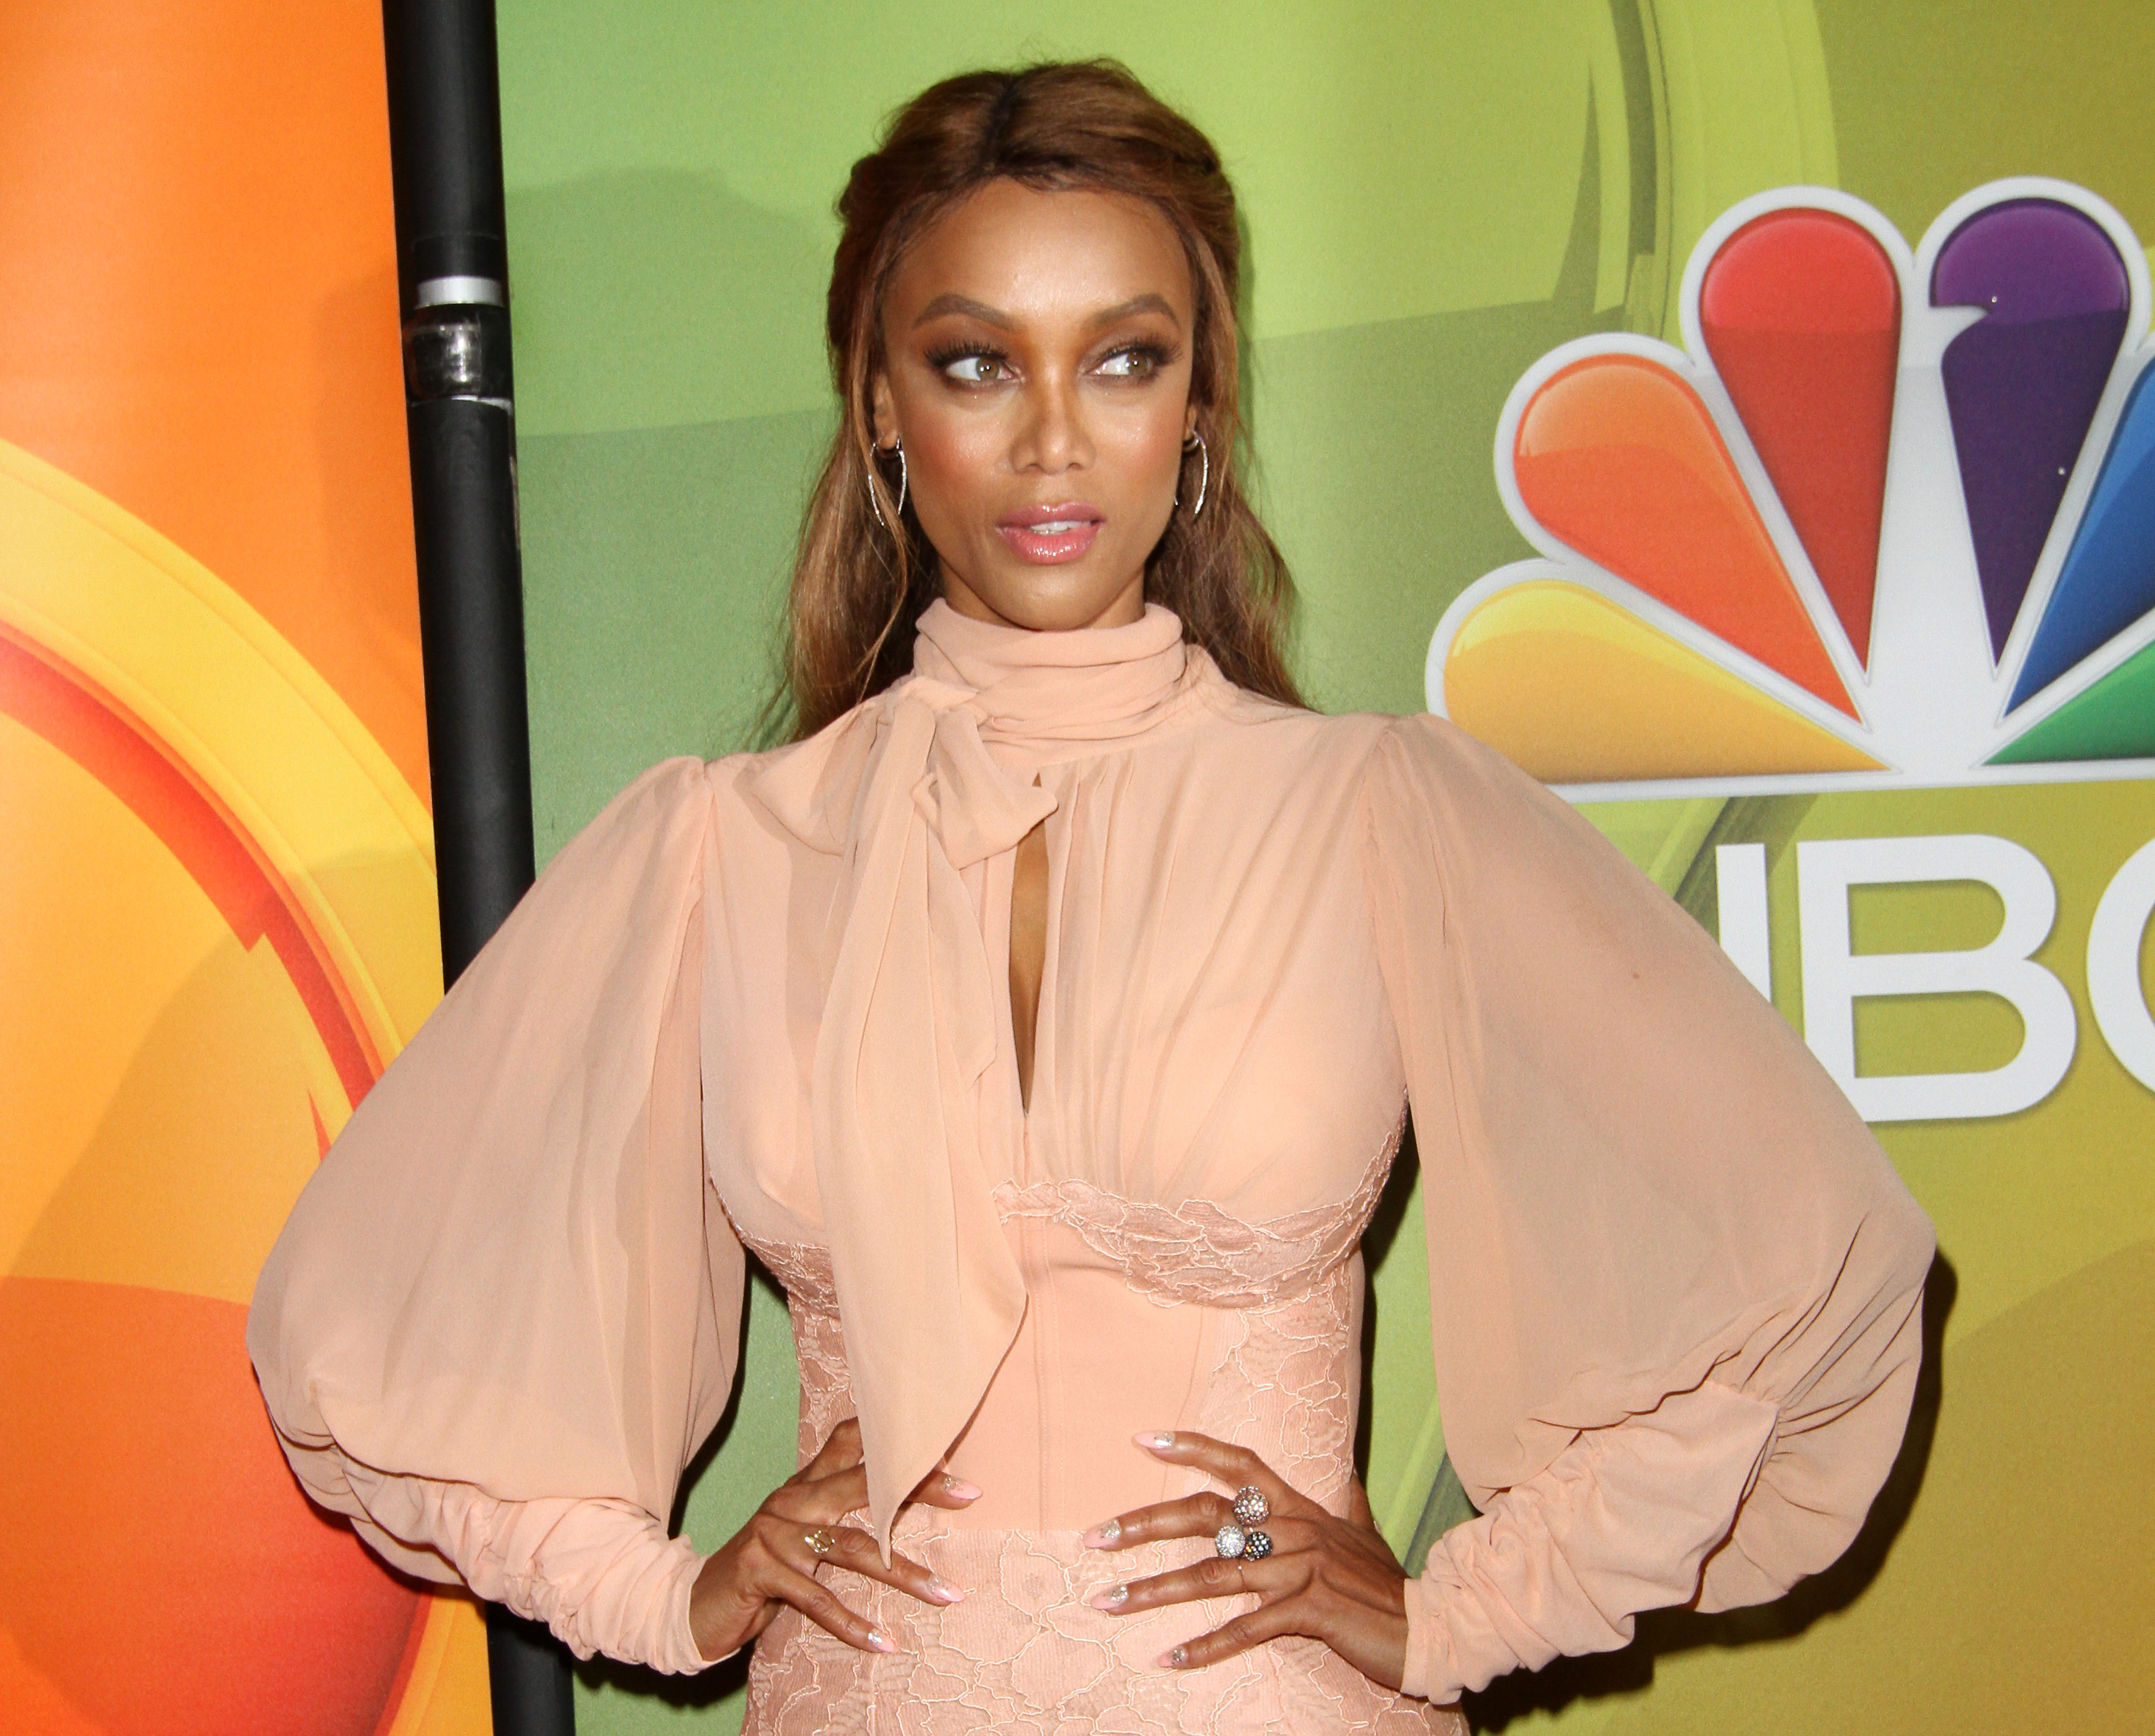 In honor of her 43th birthday, we present to you 22 reasons why we all love Tyra Banks! (Photo: WENN)